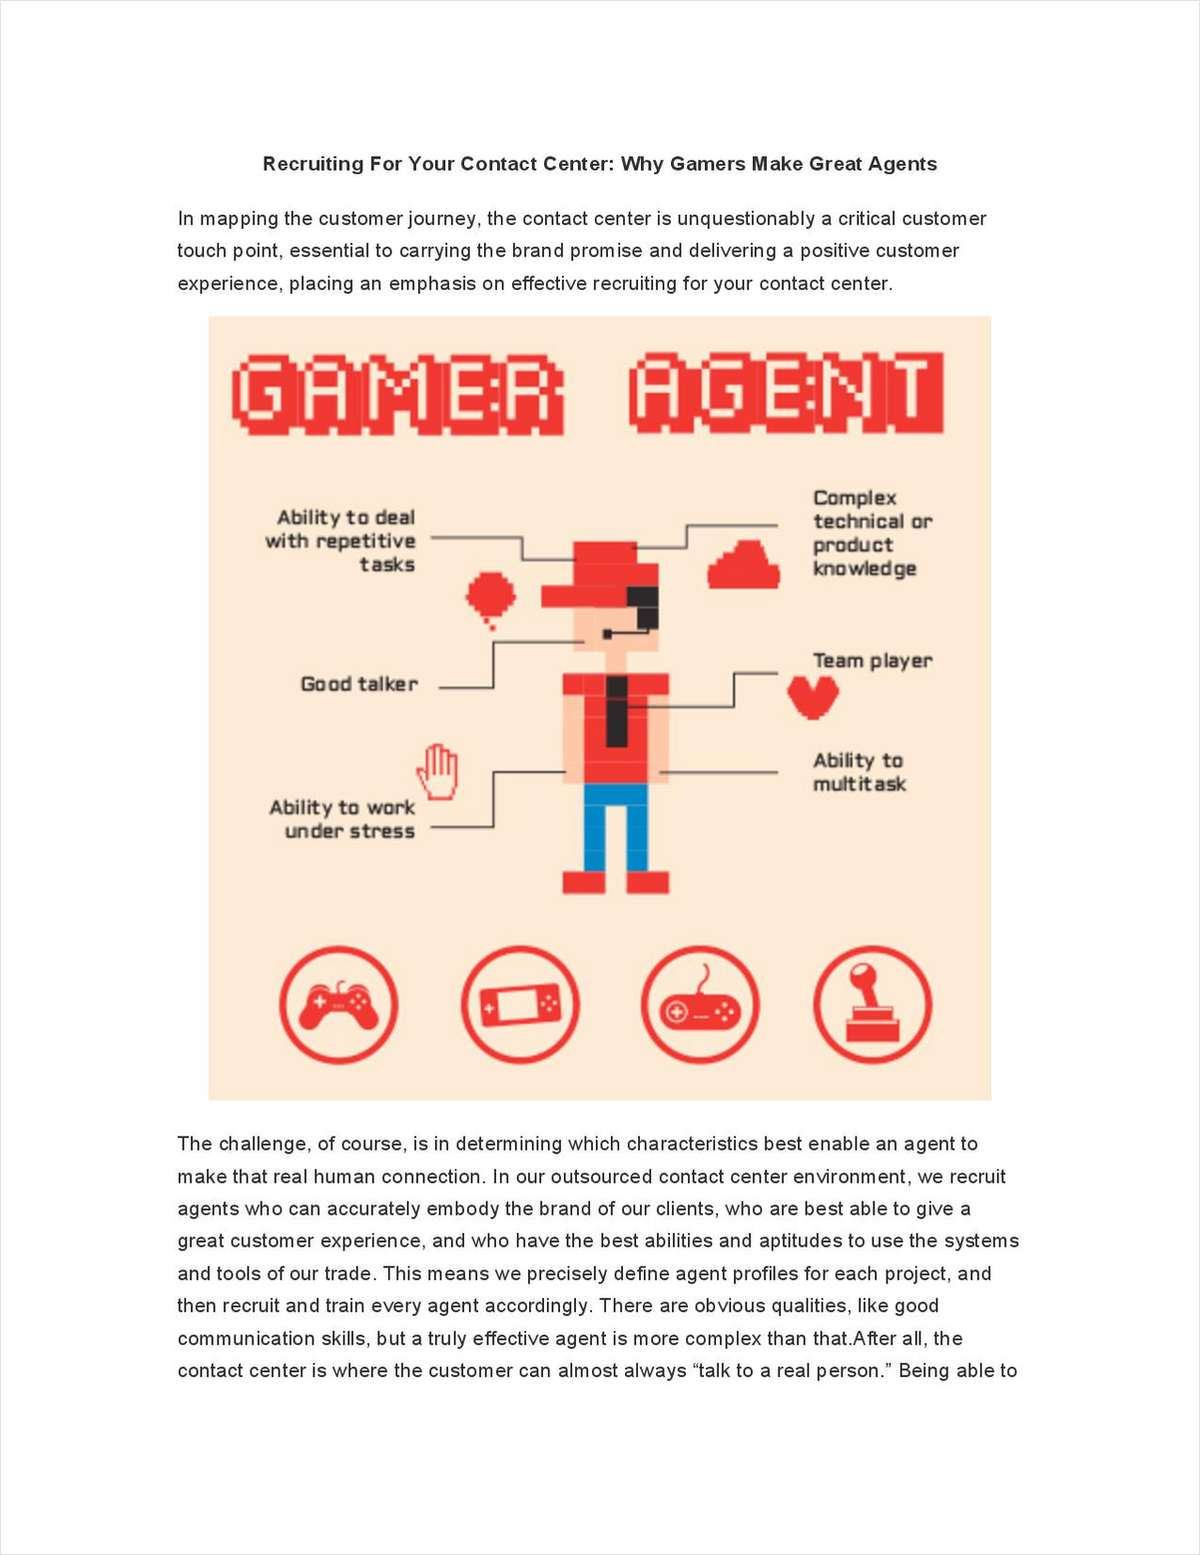 Recruiting for Your Contact Center: Why Gamers Make Great Agents